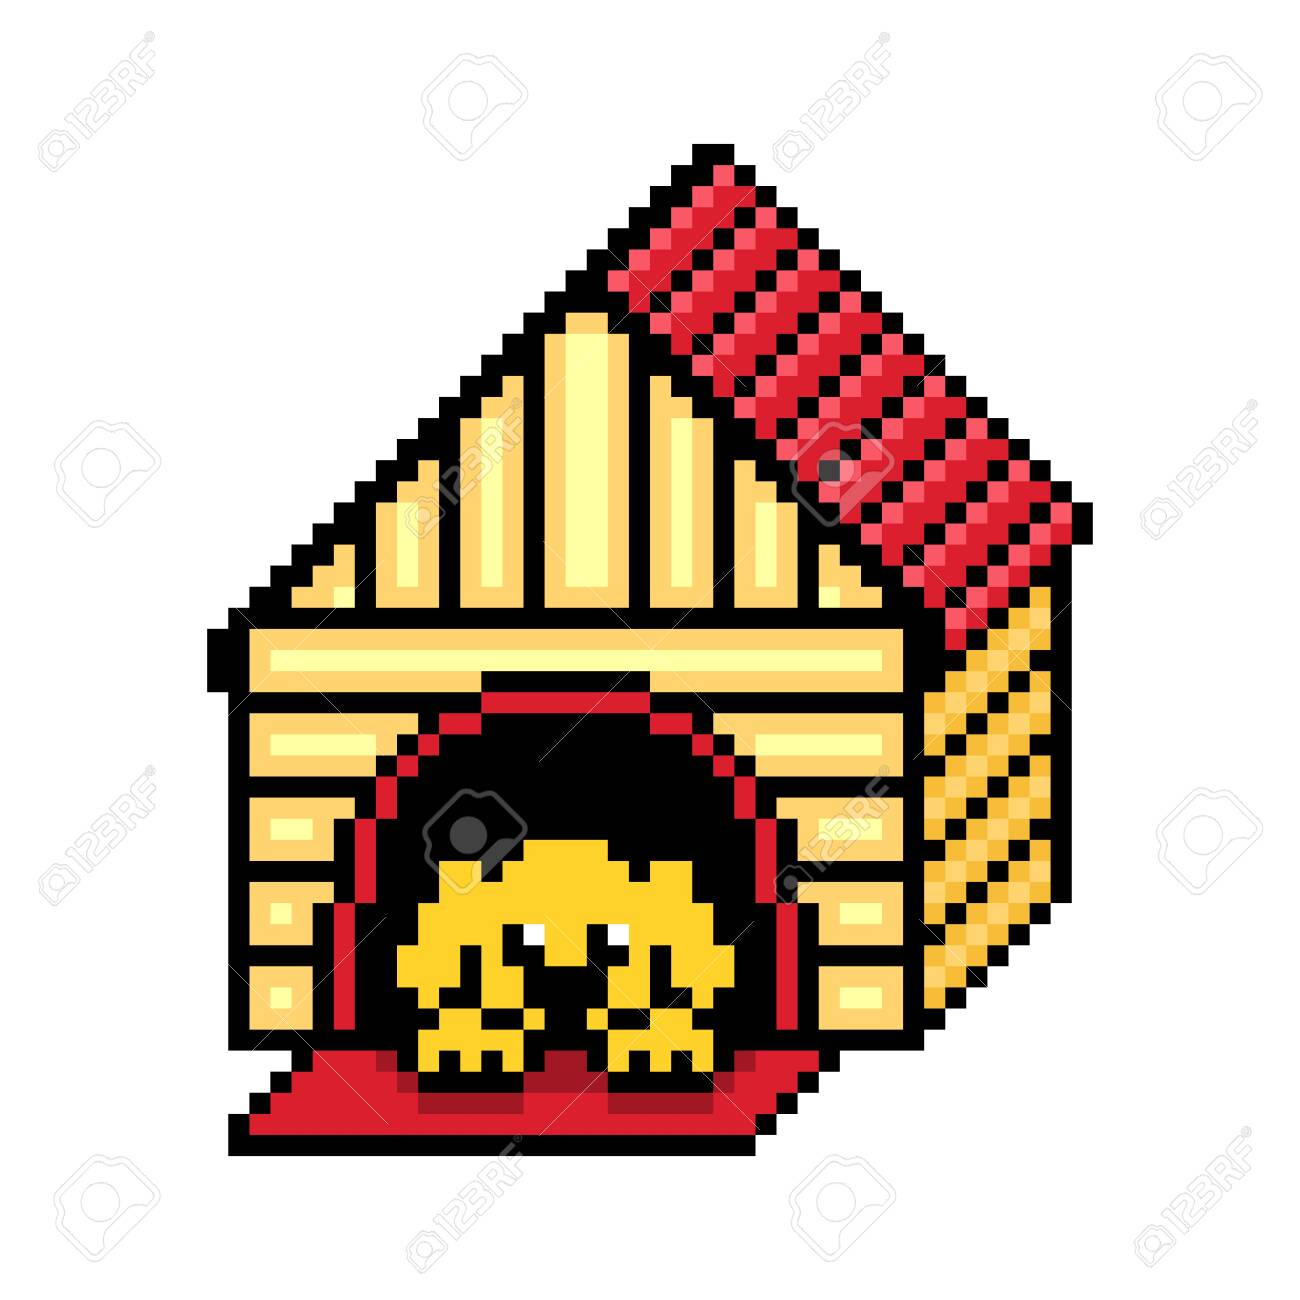 Dog Lying In A Wooden Doghouse With A Red Roof Black Outline Royalty Free Cliparts Vectors And Stock Illustration Image 141067989